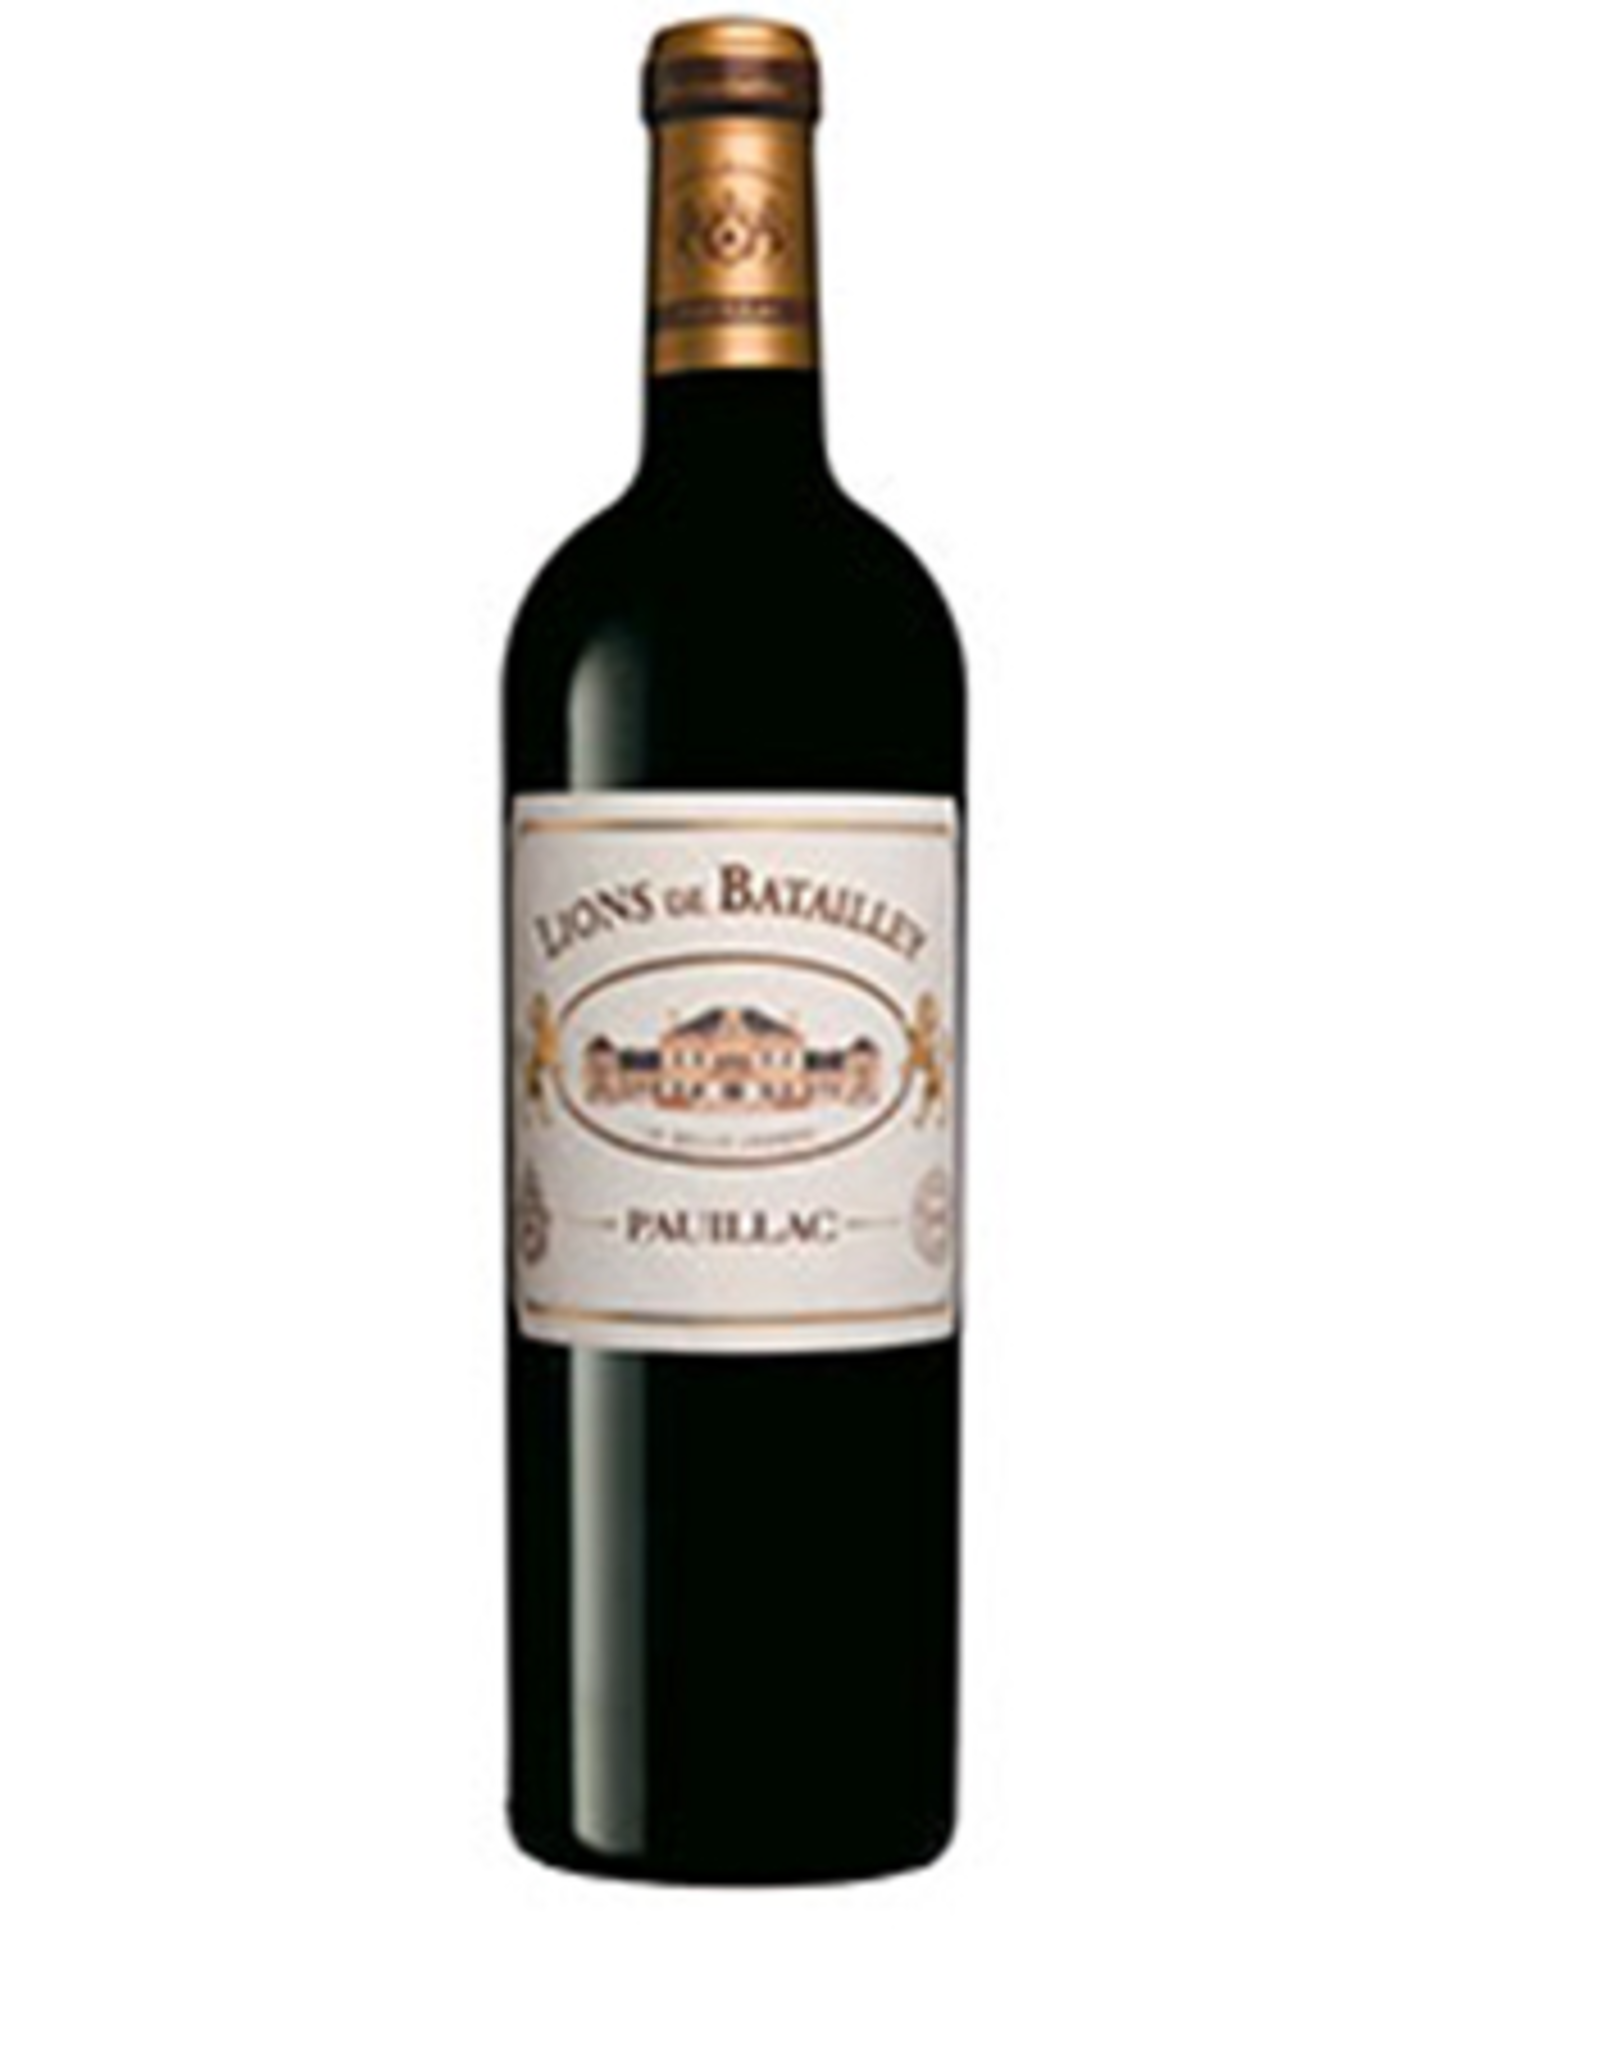 Batailley Chateau Batailley Lions de Batailley Pauillac 2014